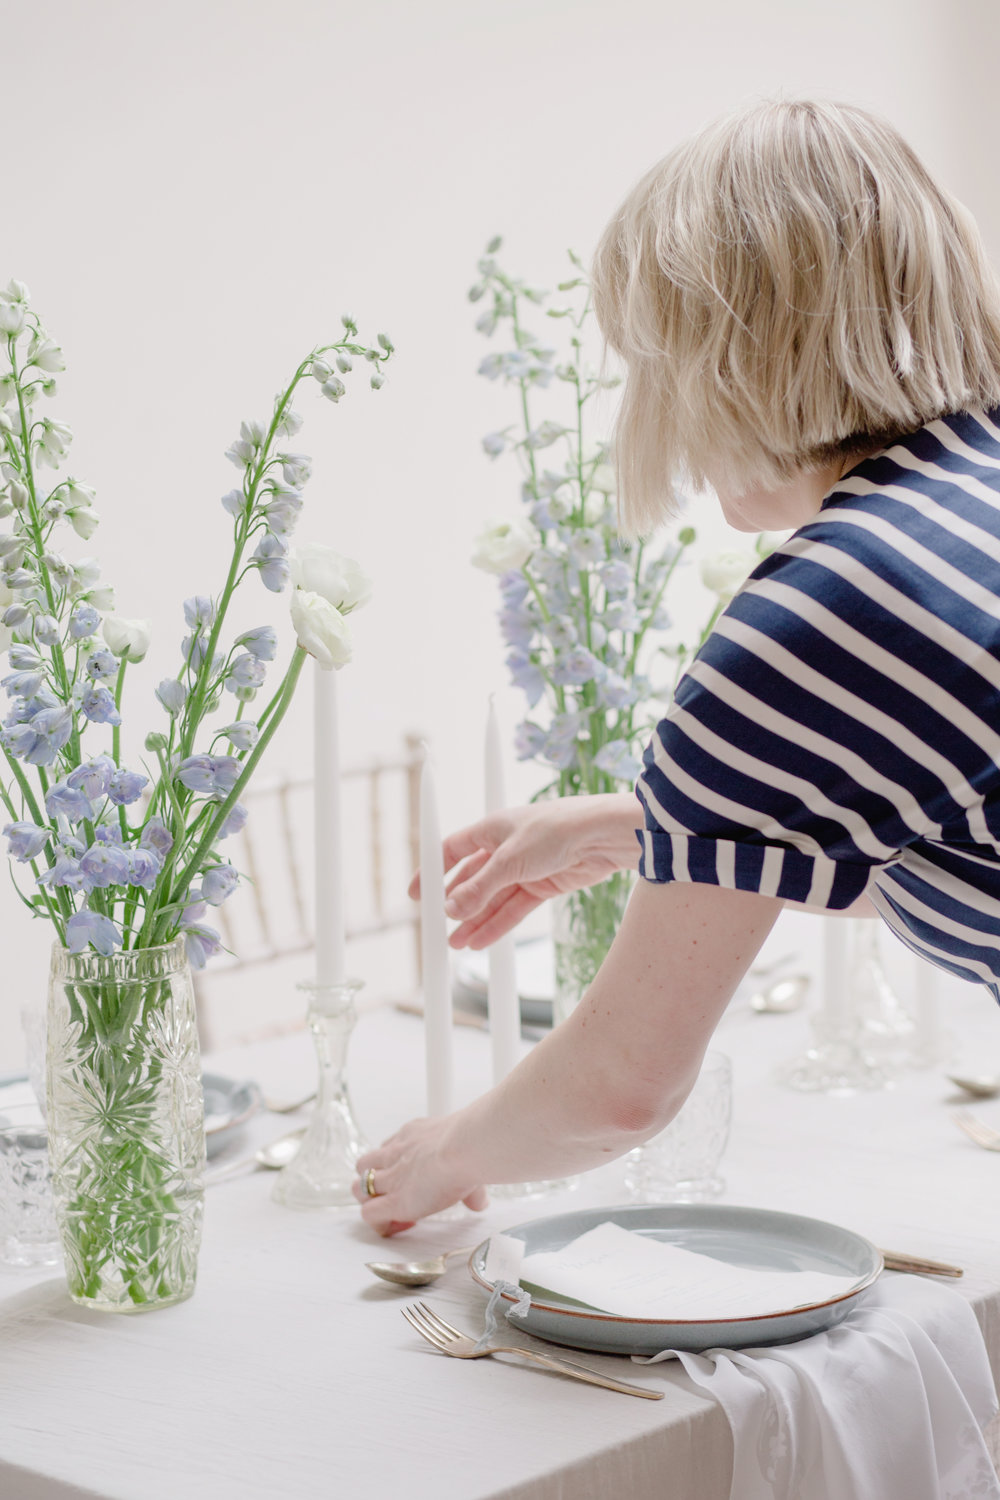 The Timeless Stylist-UK Wedding Design and Styling-Simple Summer Tablescape Styling